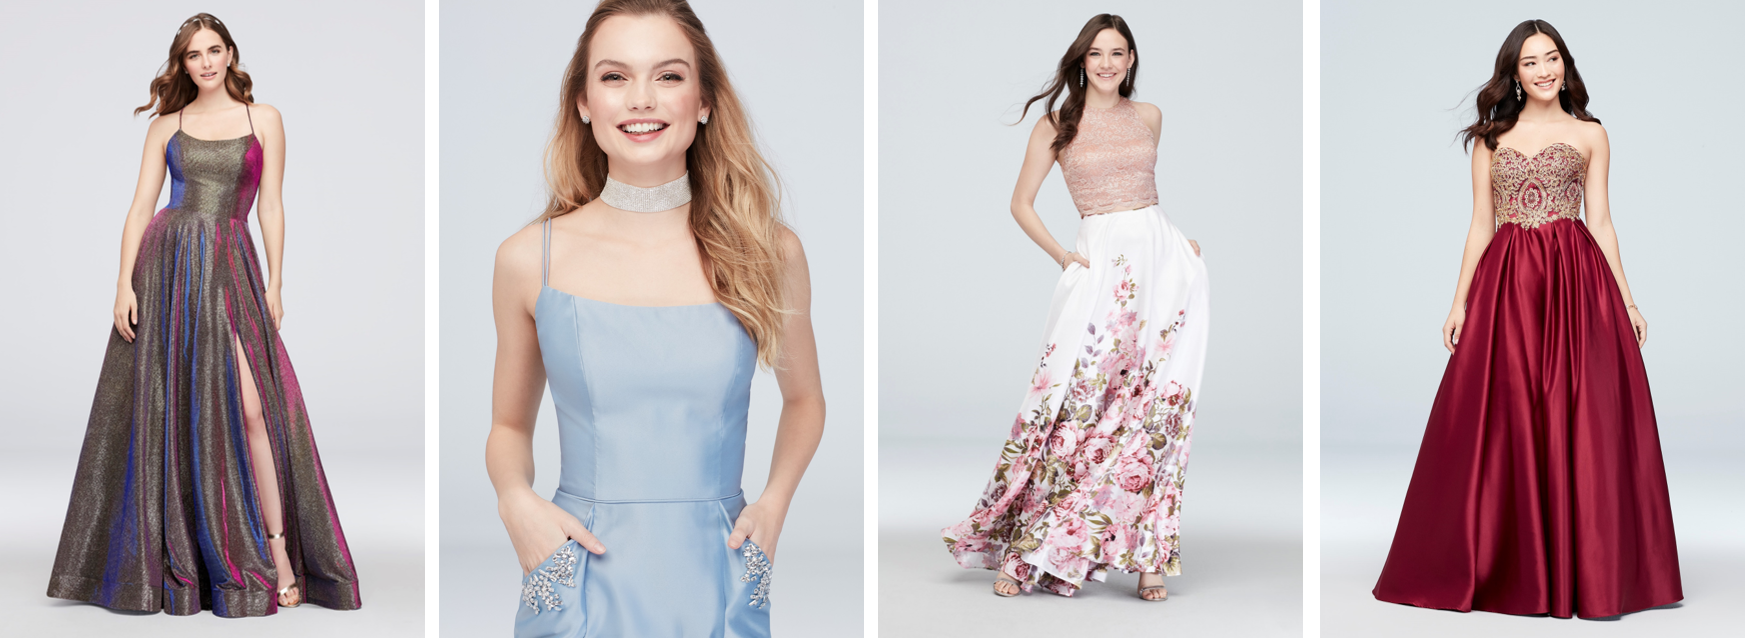 Four girls smiling in prom dresses with pockets of various colors and styles